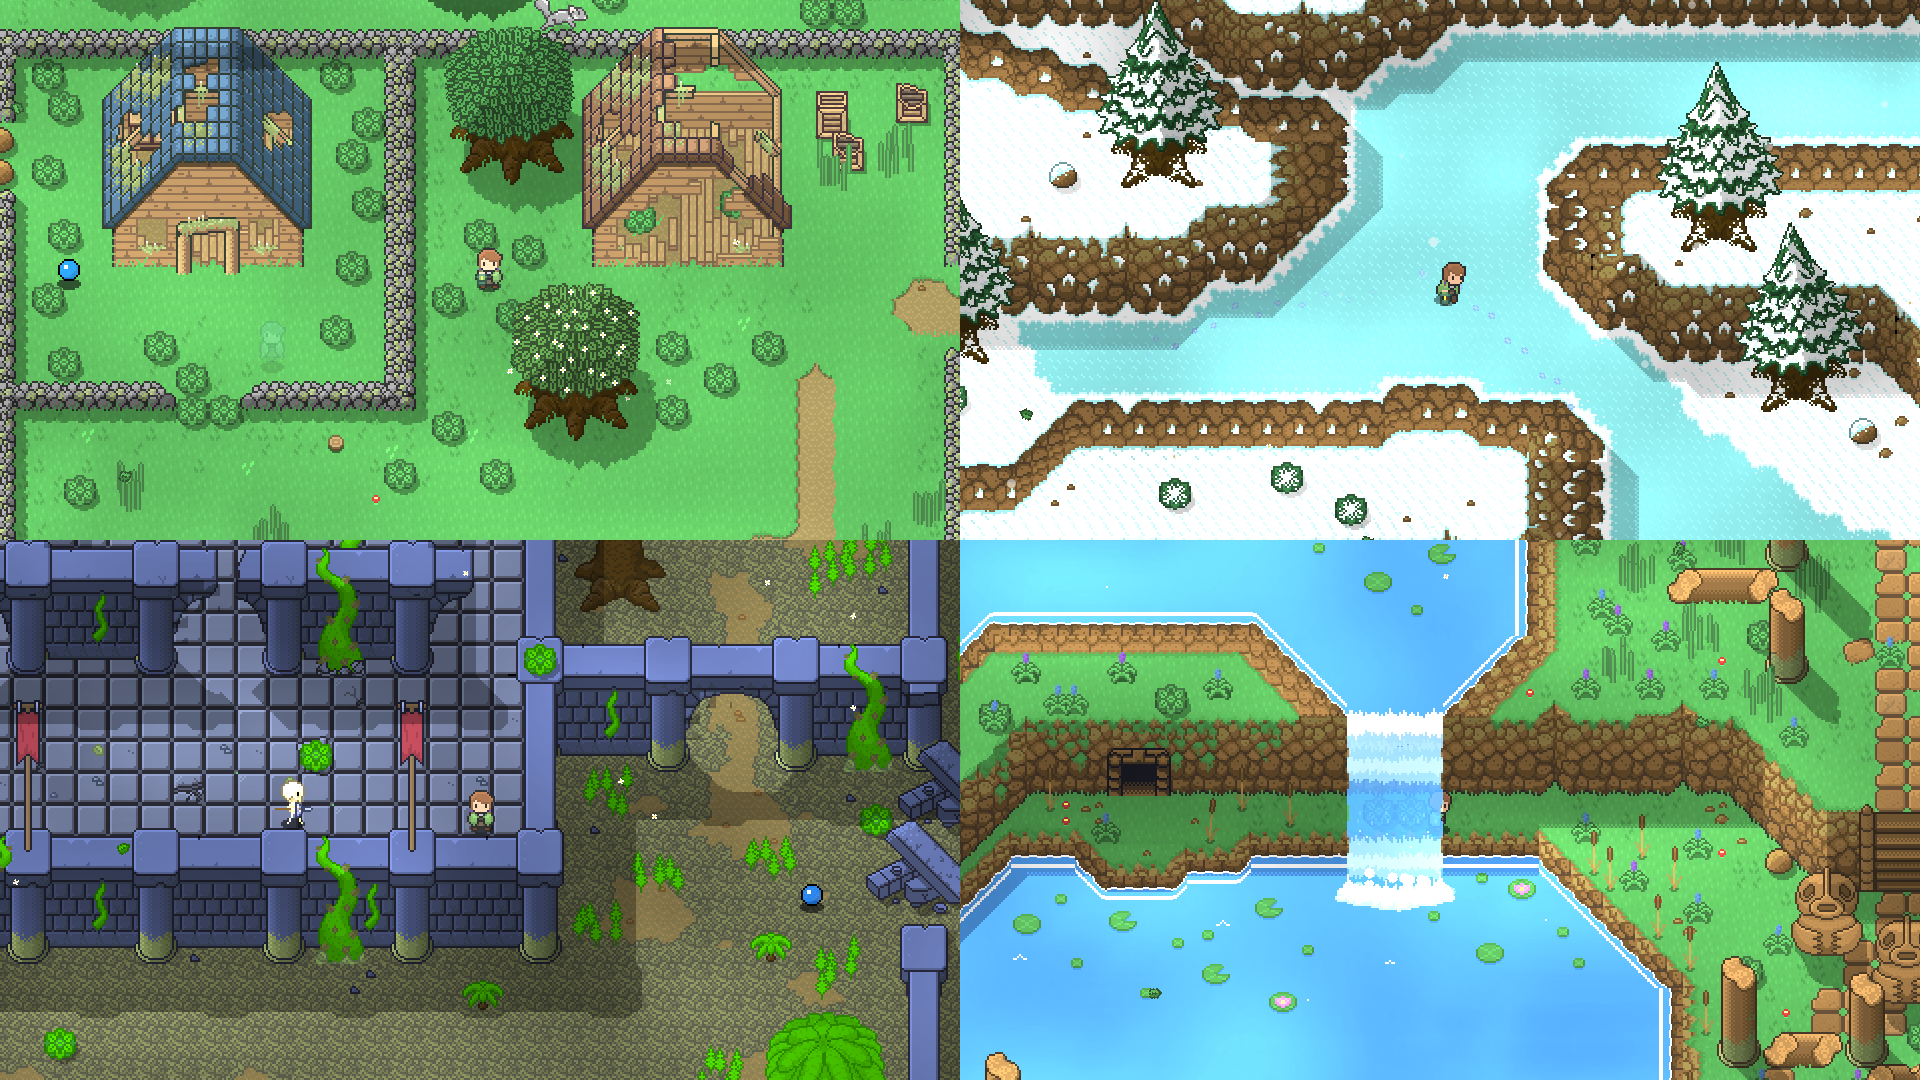 Some of the new overworld areas